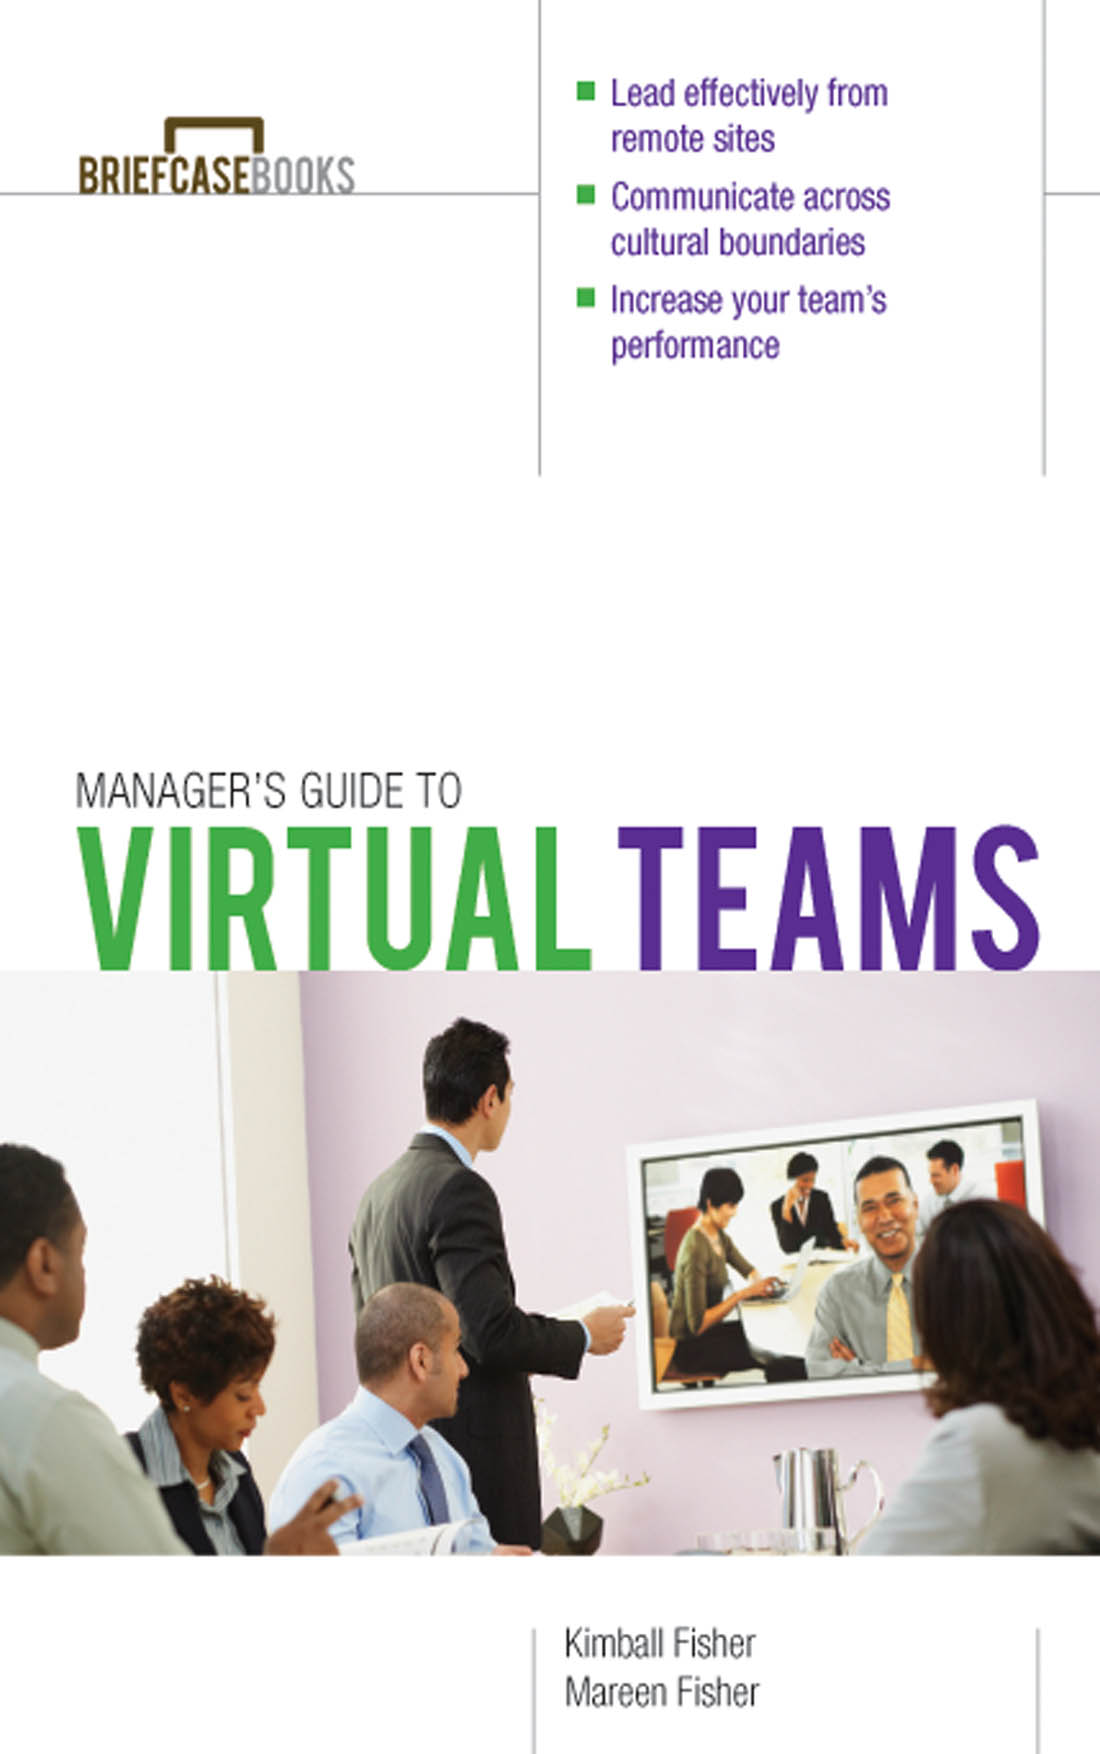 Download Ebook Manager's Guide to Virtual Teams by Kimball Fisher Pdf